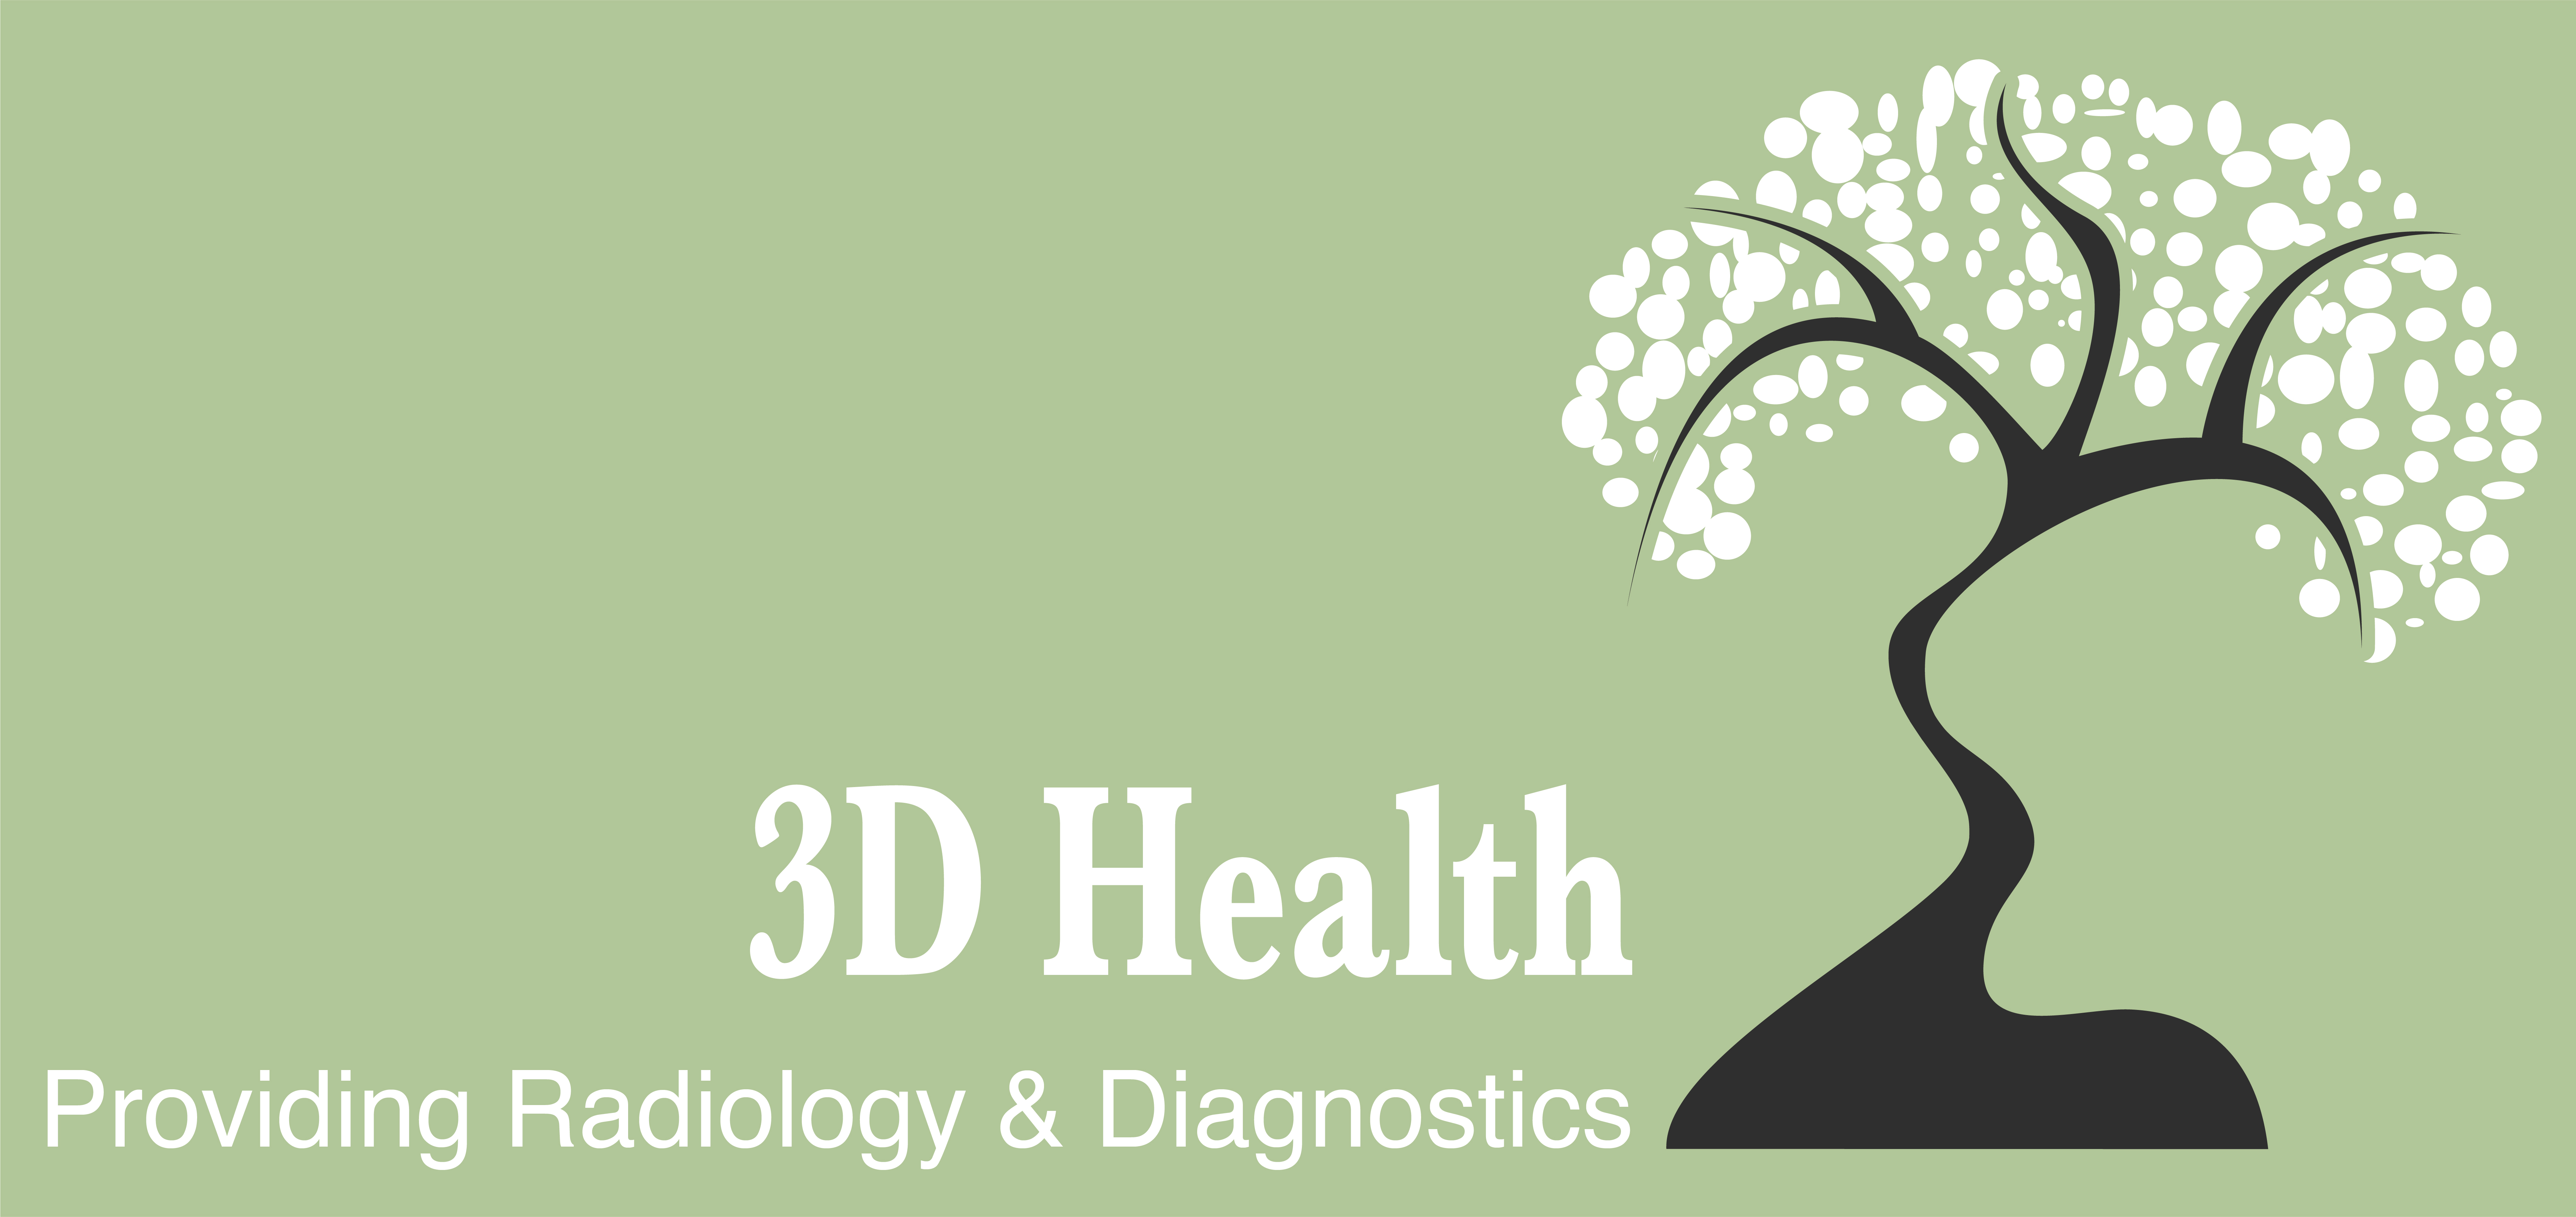 3D Health Nationwide Radiology & Diagnostic Service